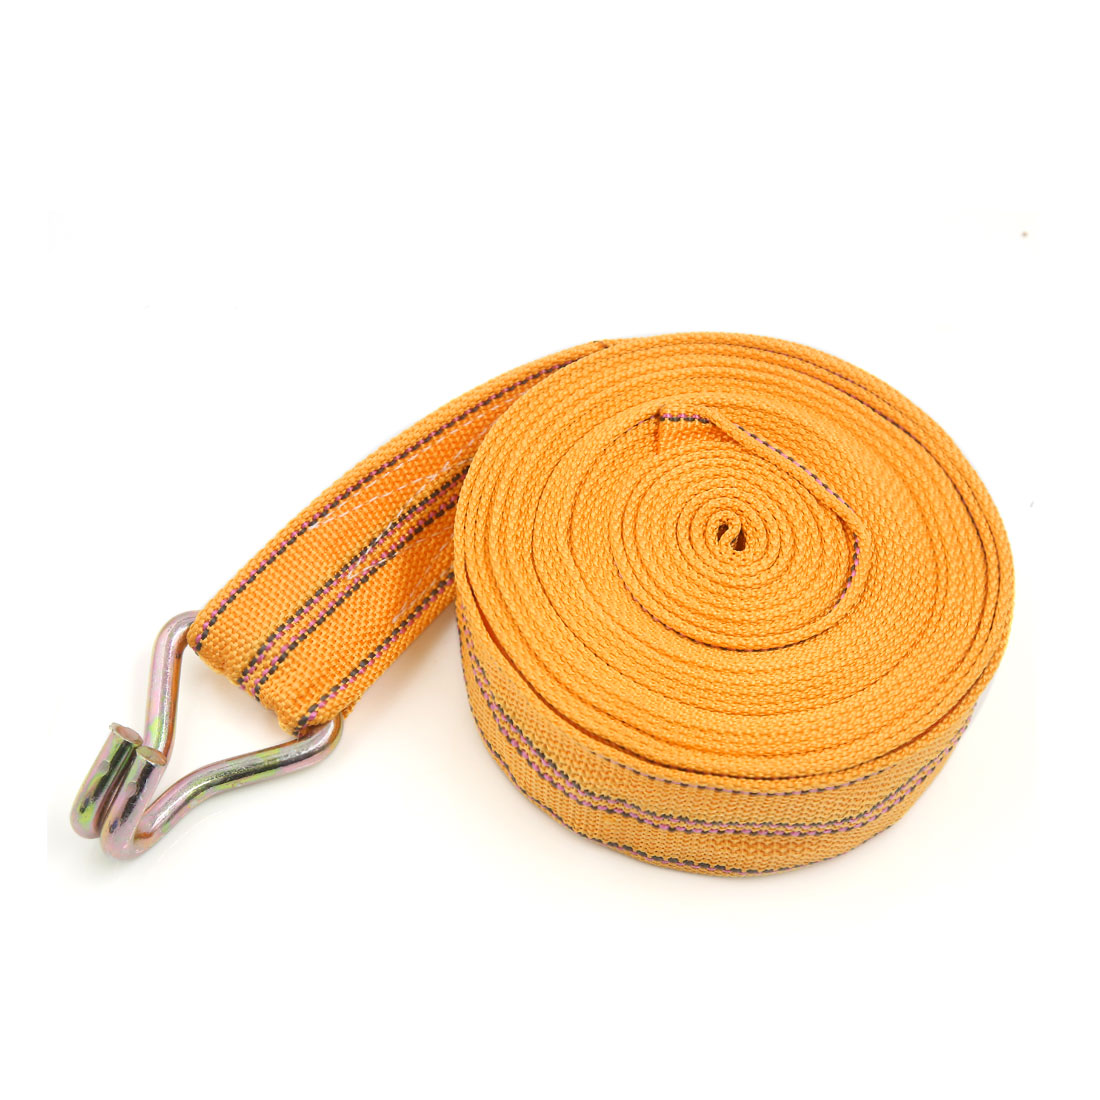 10M Long 55mm Width Tie Down Straps Cargo Lash Luggage Fixation Belt for Car